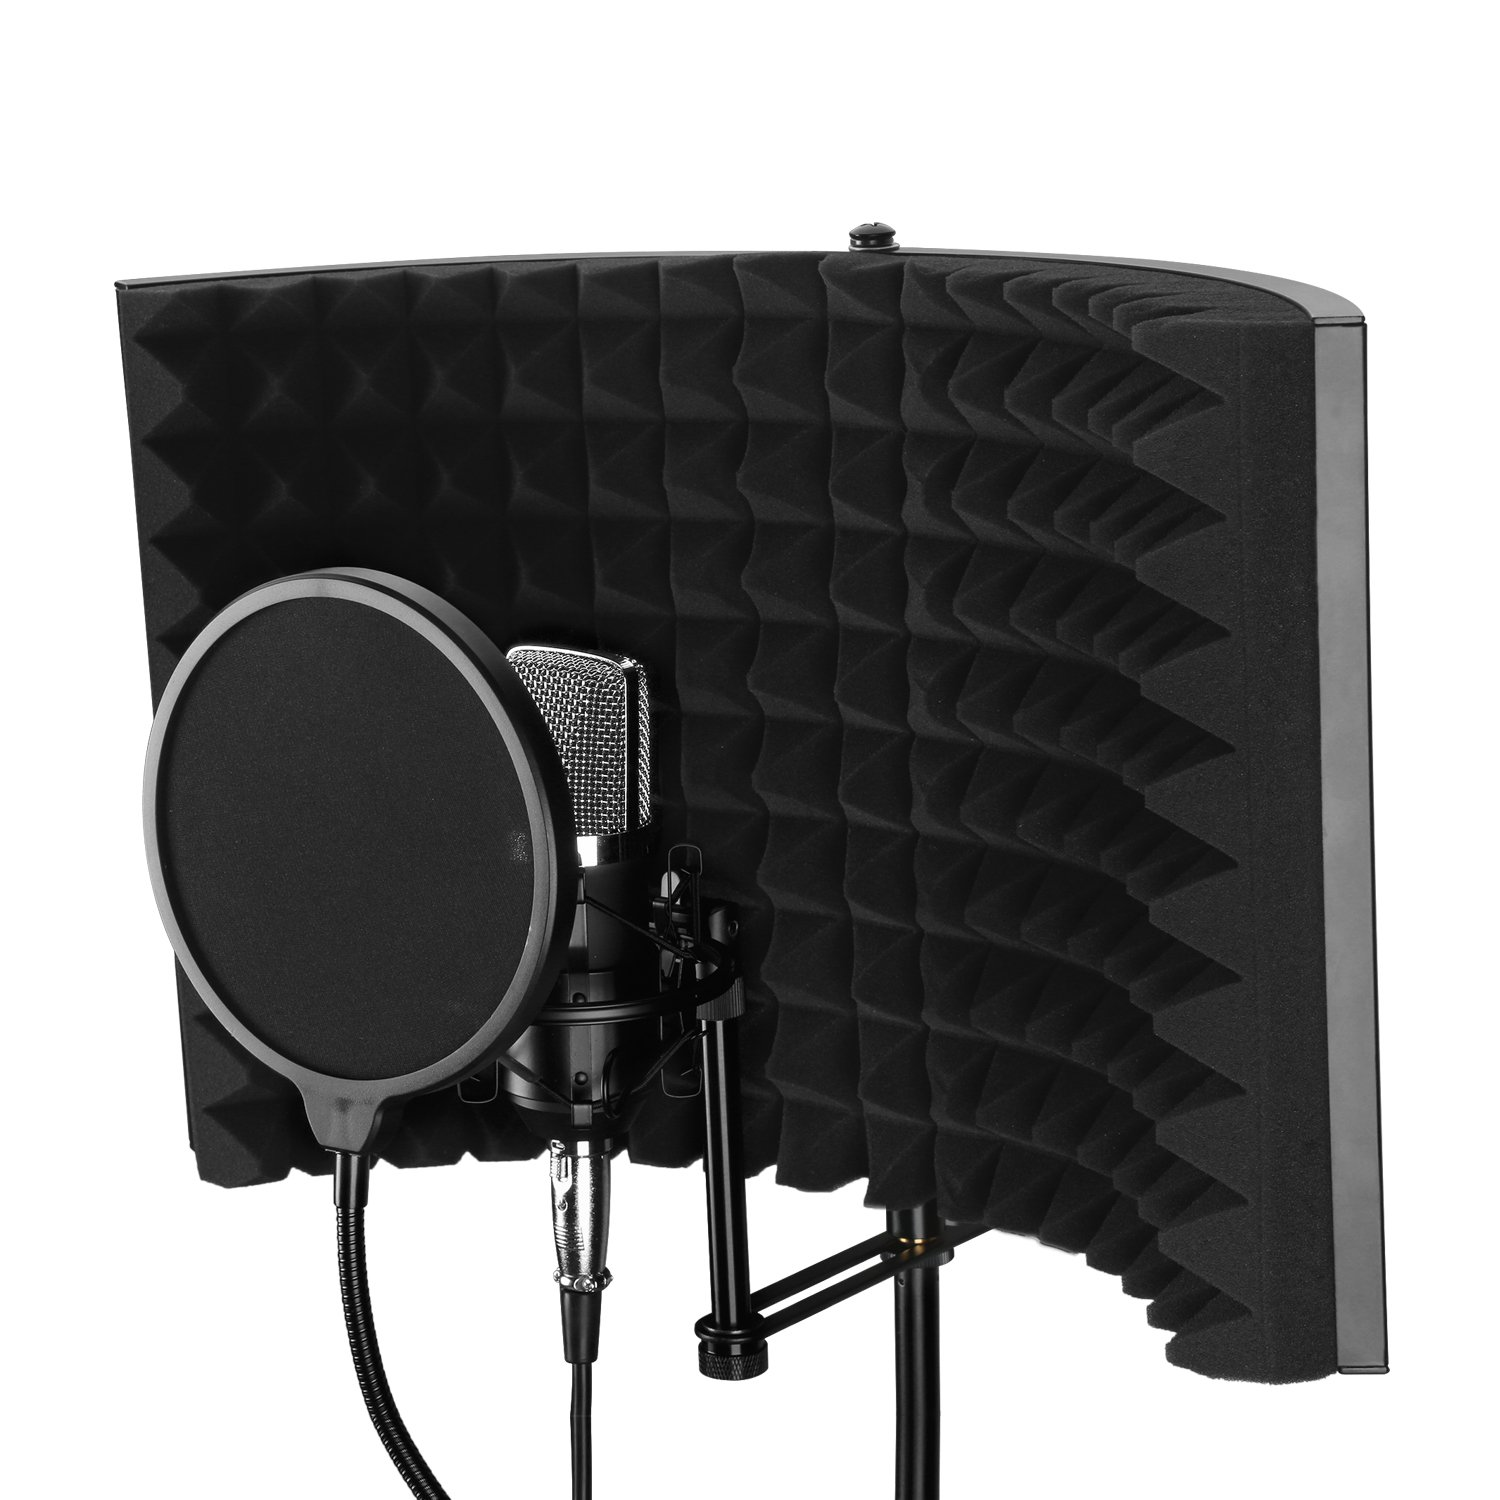 Aokeo Premium Microphone Isolation Shield, Foldable Adjustable Studio Recording Microphone Isolator Panel, Constructed with Industrial Quality Aluminum, High-Density Absorbing Foam Cotton (AO-302) by aokeo (Image #3)